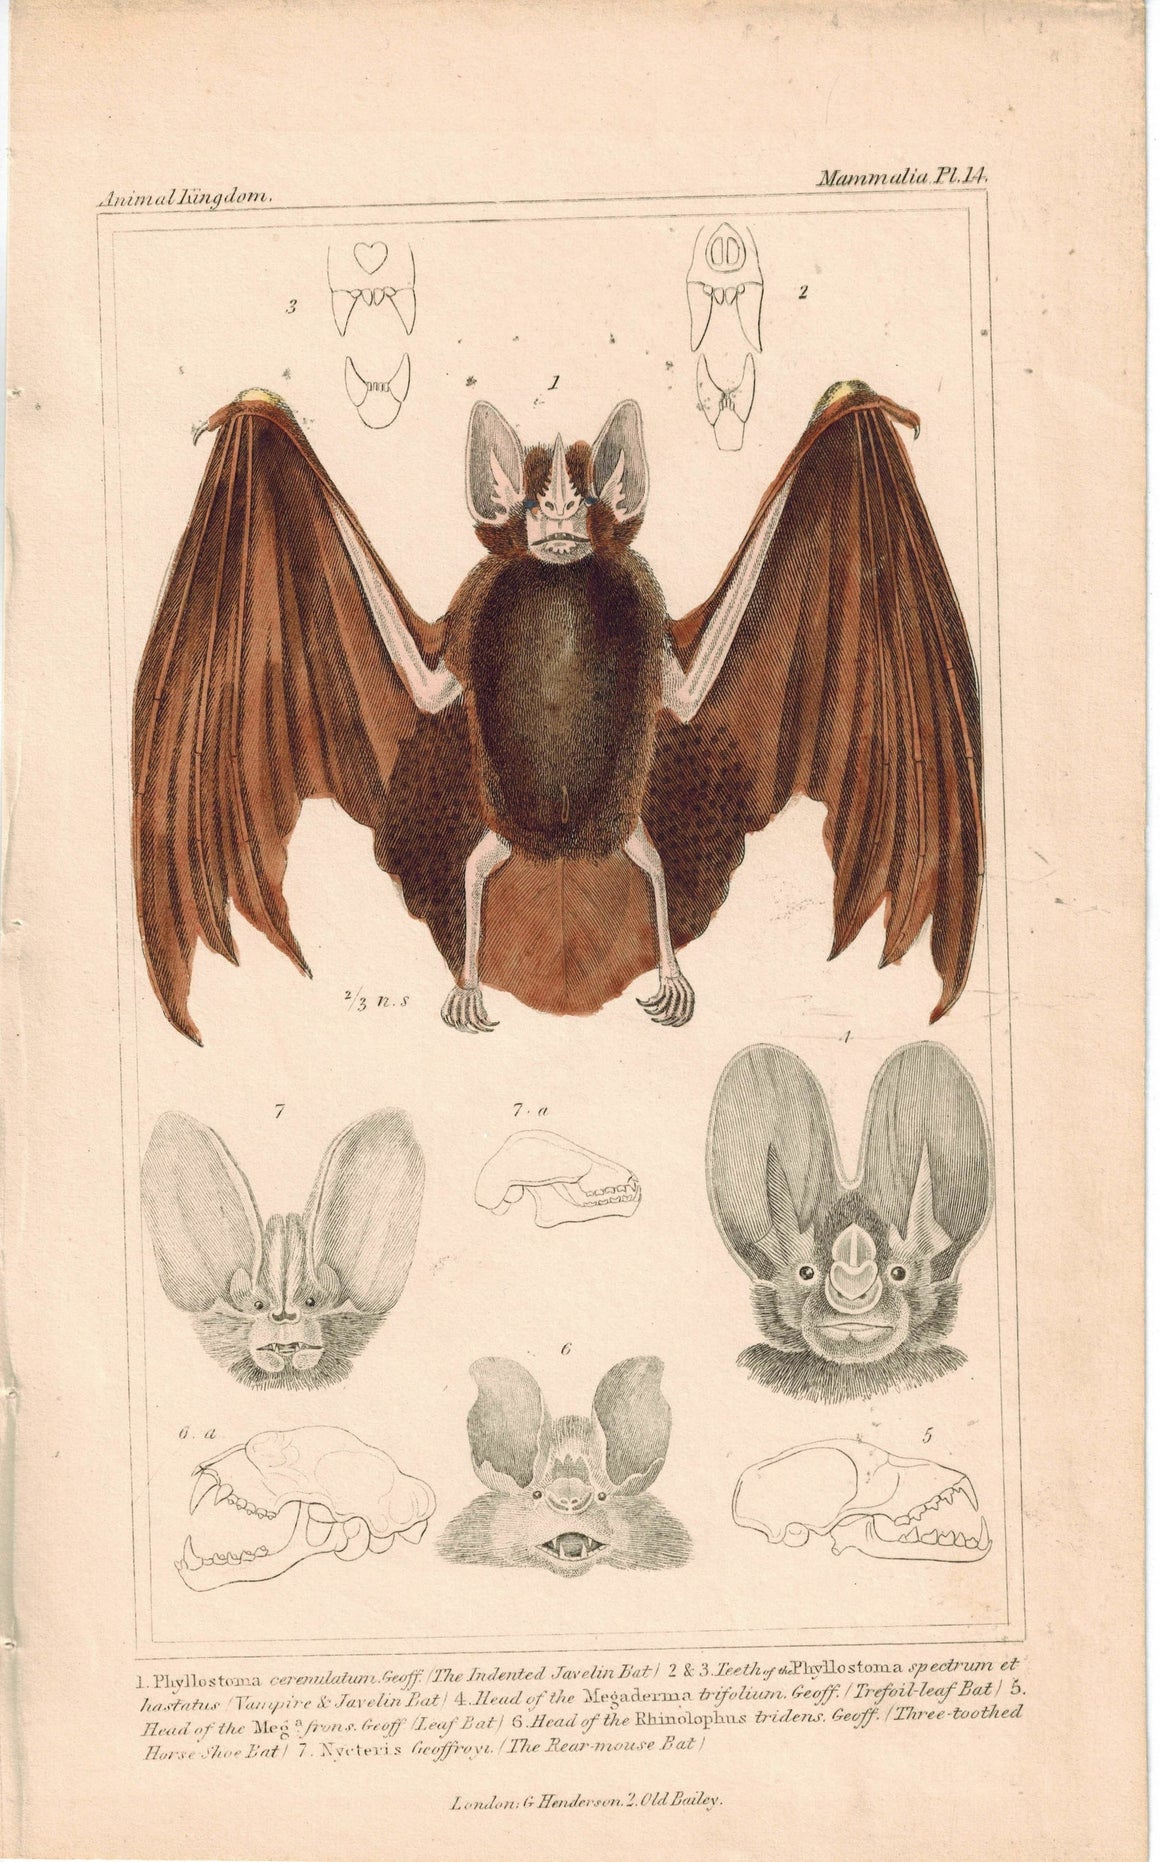 Vampire & Indented Javelin & Rear-Mouse Bat 1837 Engraved Cuvier Print